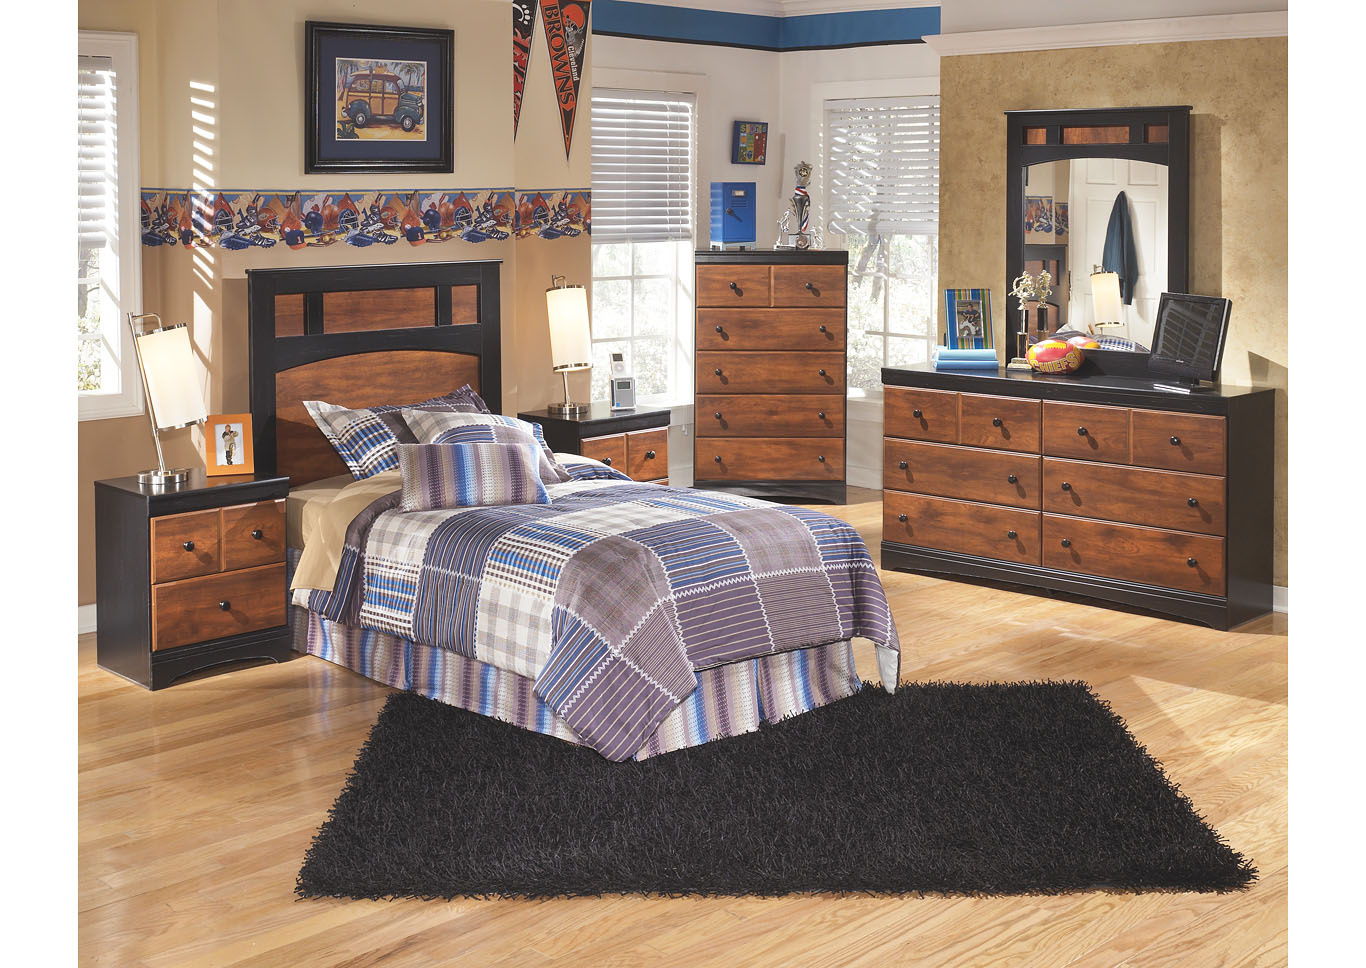 Aimwell Twin Panel Headboard w/Dresser, Mirror, Drawer Chest & Nightstand,Signature Design By Ashley